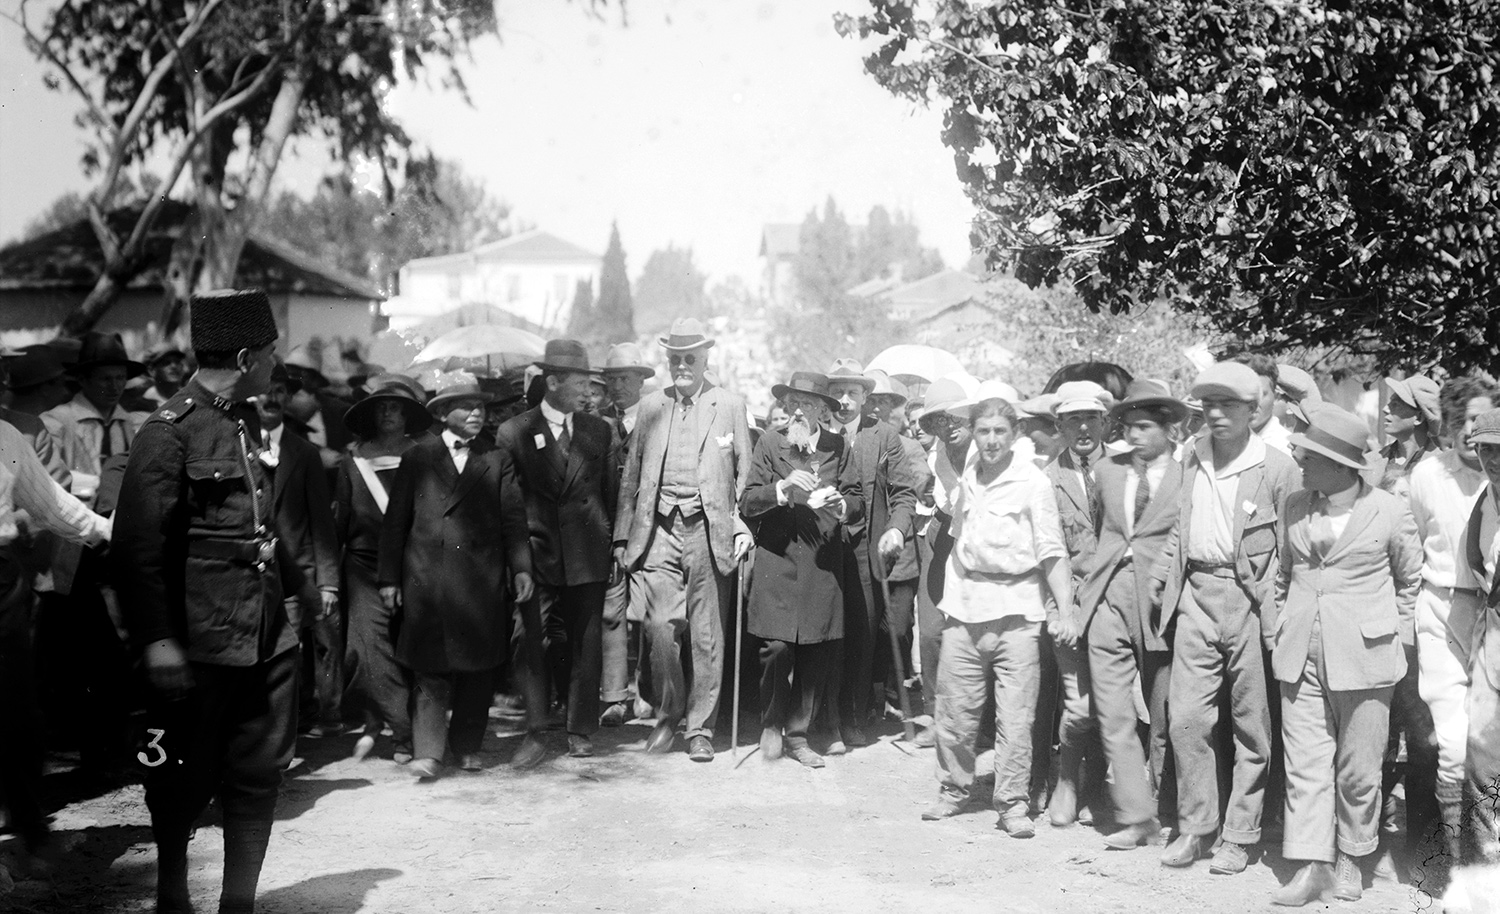 The Balfour Declaration and the Jewish Threat that Made Britain Honor It